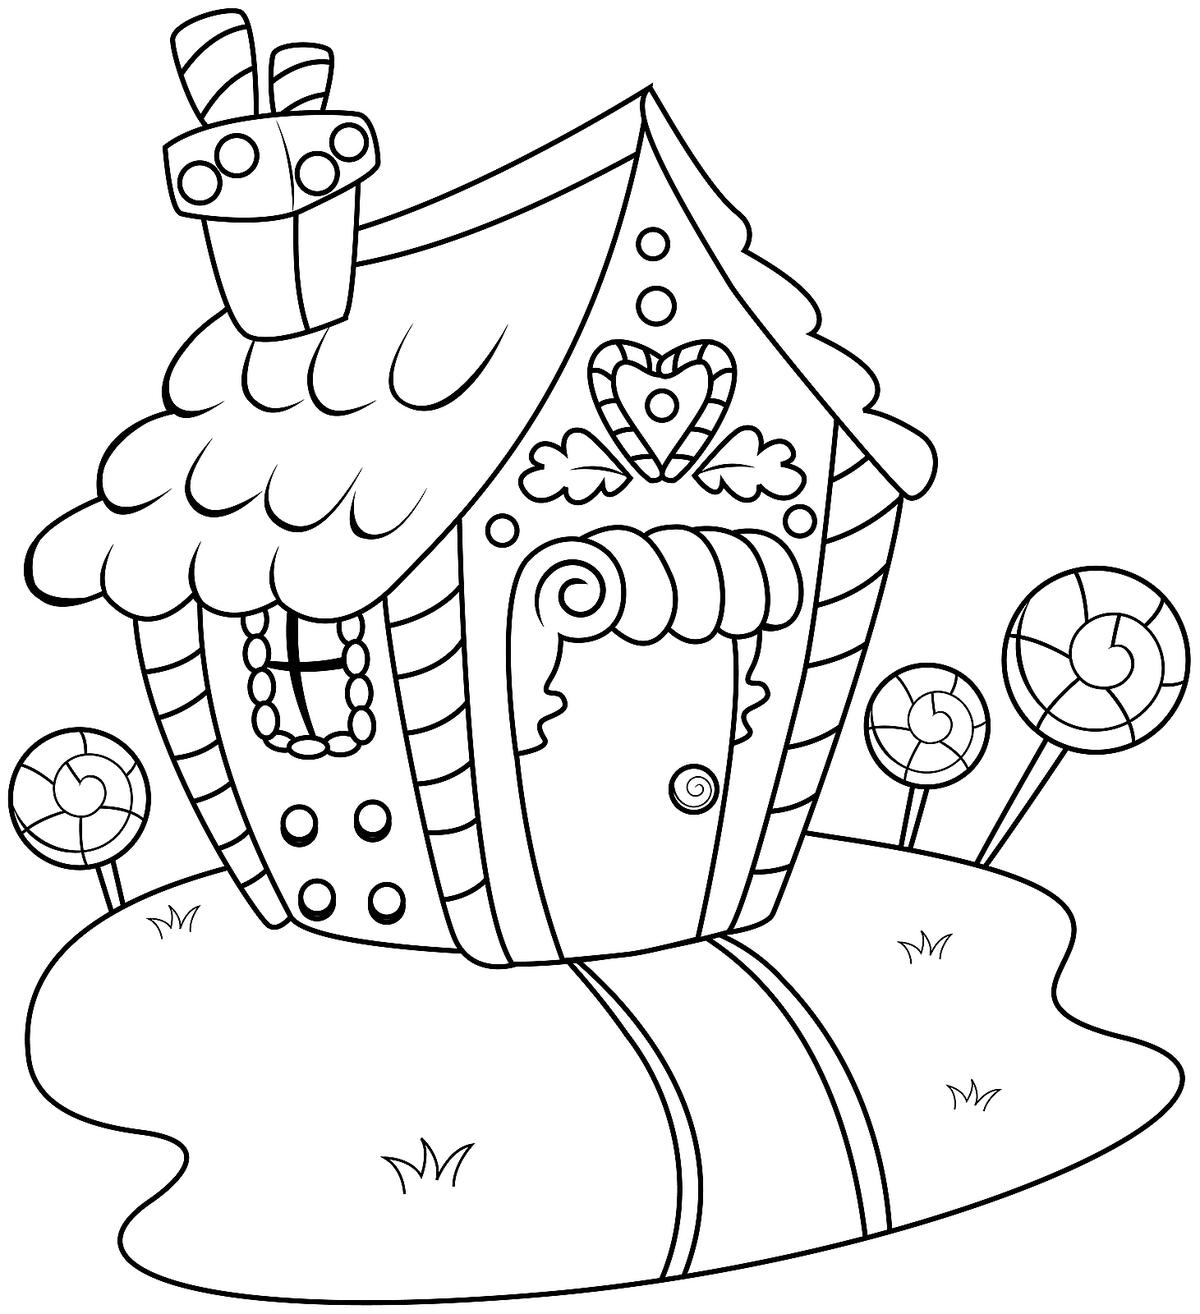 graphic relating to Printable Gingerbread House Coloring Pages known as Gingerbread Household Coloring Web pages: Printable Coloring